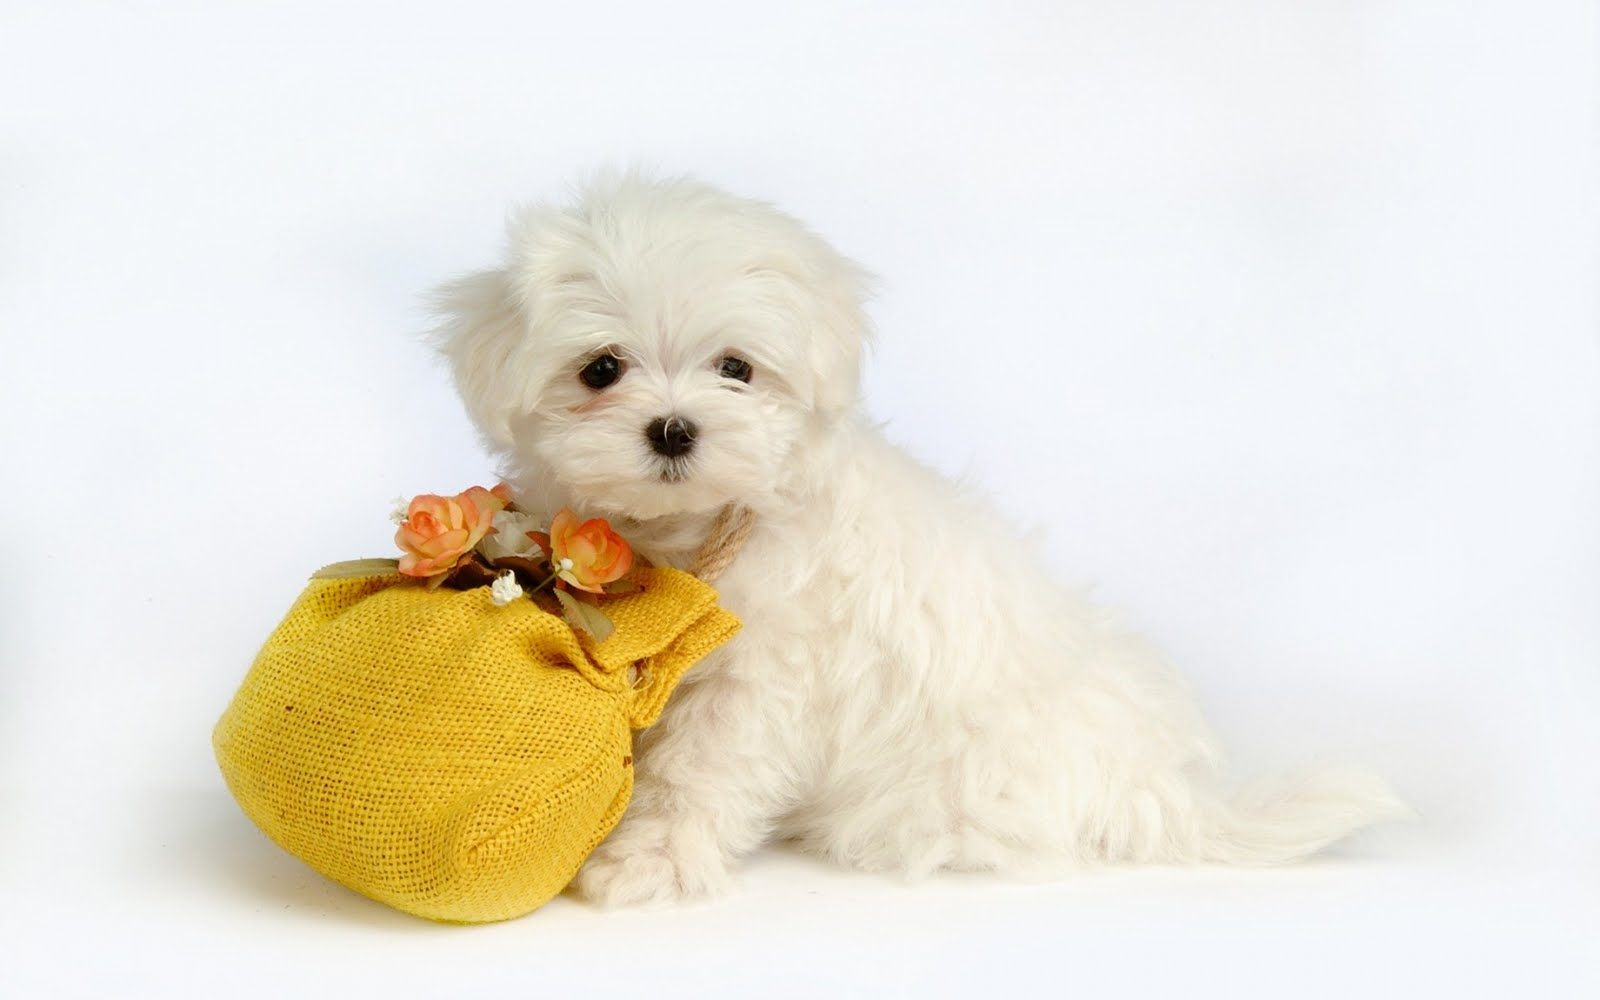 Cute Puppy Wallpaper   Wide1680x1050 Hd Desktop Wallpaper 1600x1000